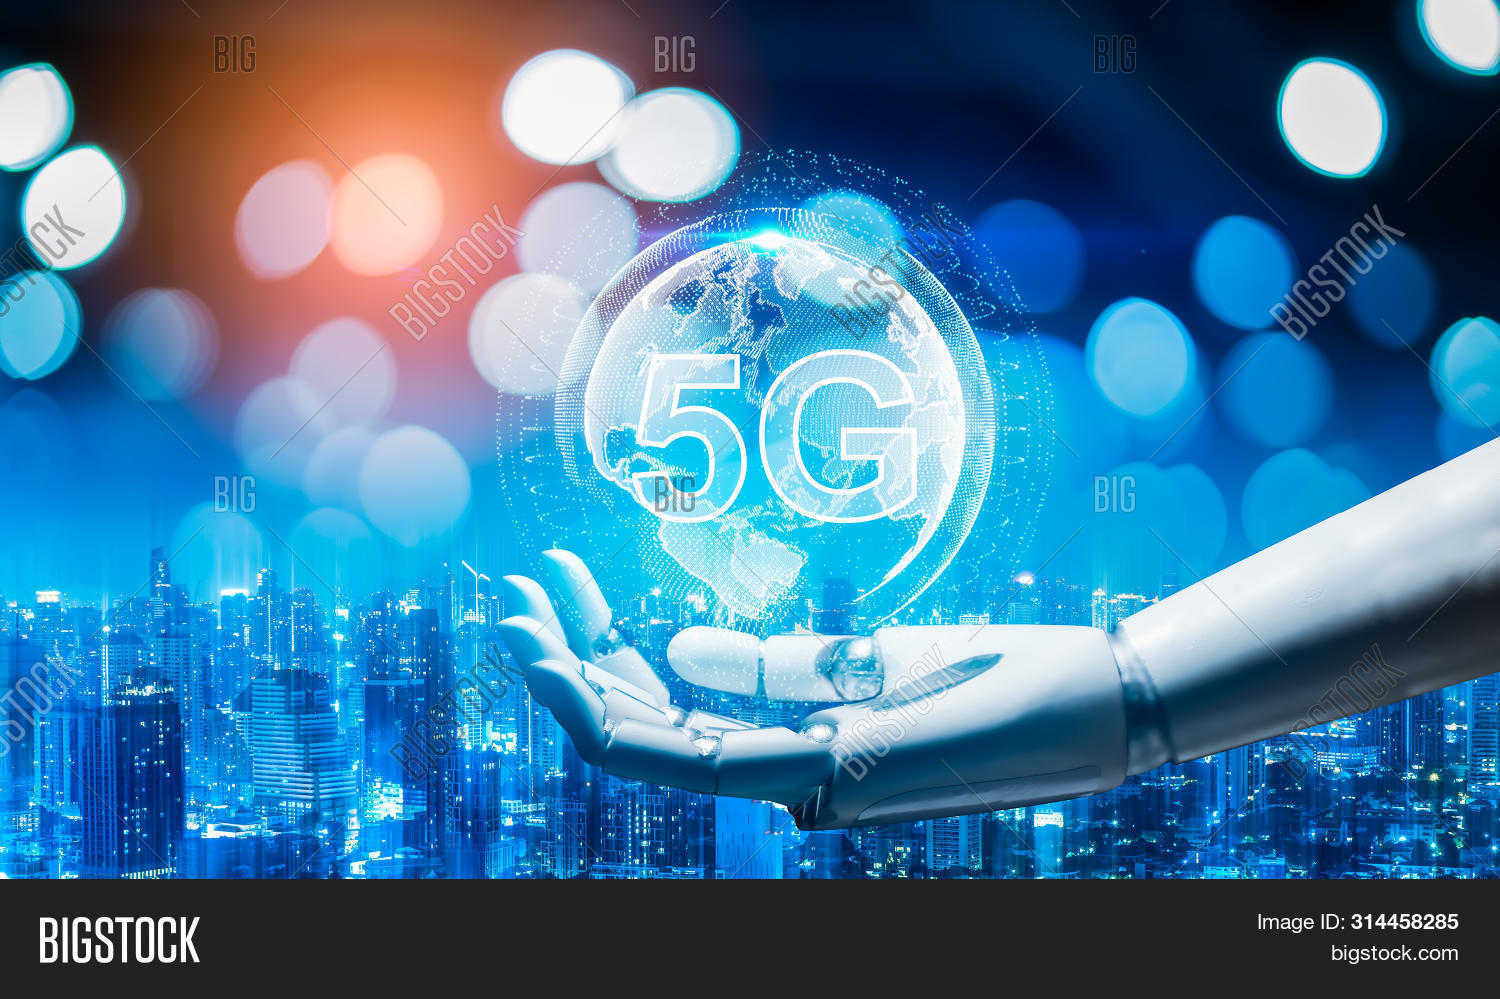 5g,big,business,commerce,communication,computing,concept,connect,connection,contact,could,culture,cyber,data,device,digital,earth,economic,exchange,finance,fintech,future,global,hand,intelligence,interational,internet,invest,iot,laptop,link,map,medie,metwork,online,polygon,protect,robot,robotic,satellite,screen,search,security,social,system,tech,technology,thing,web,world